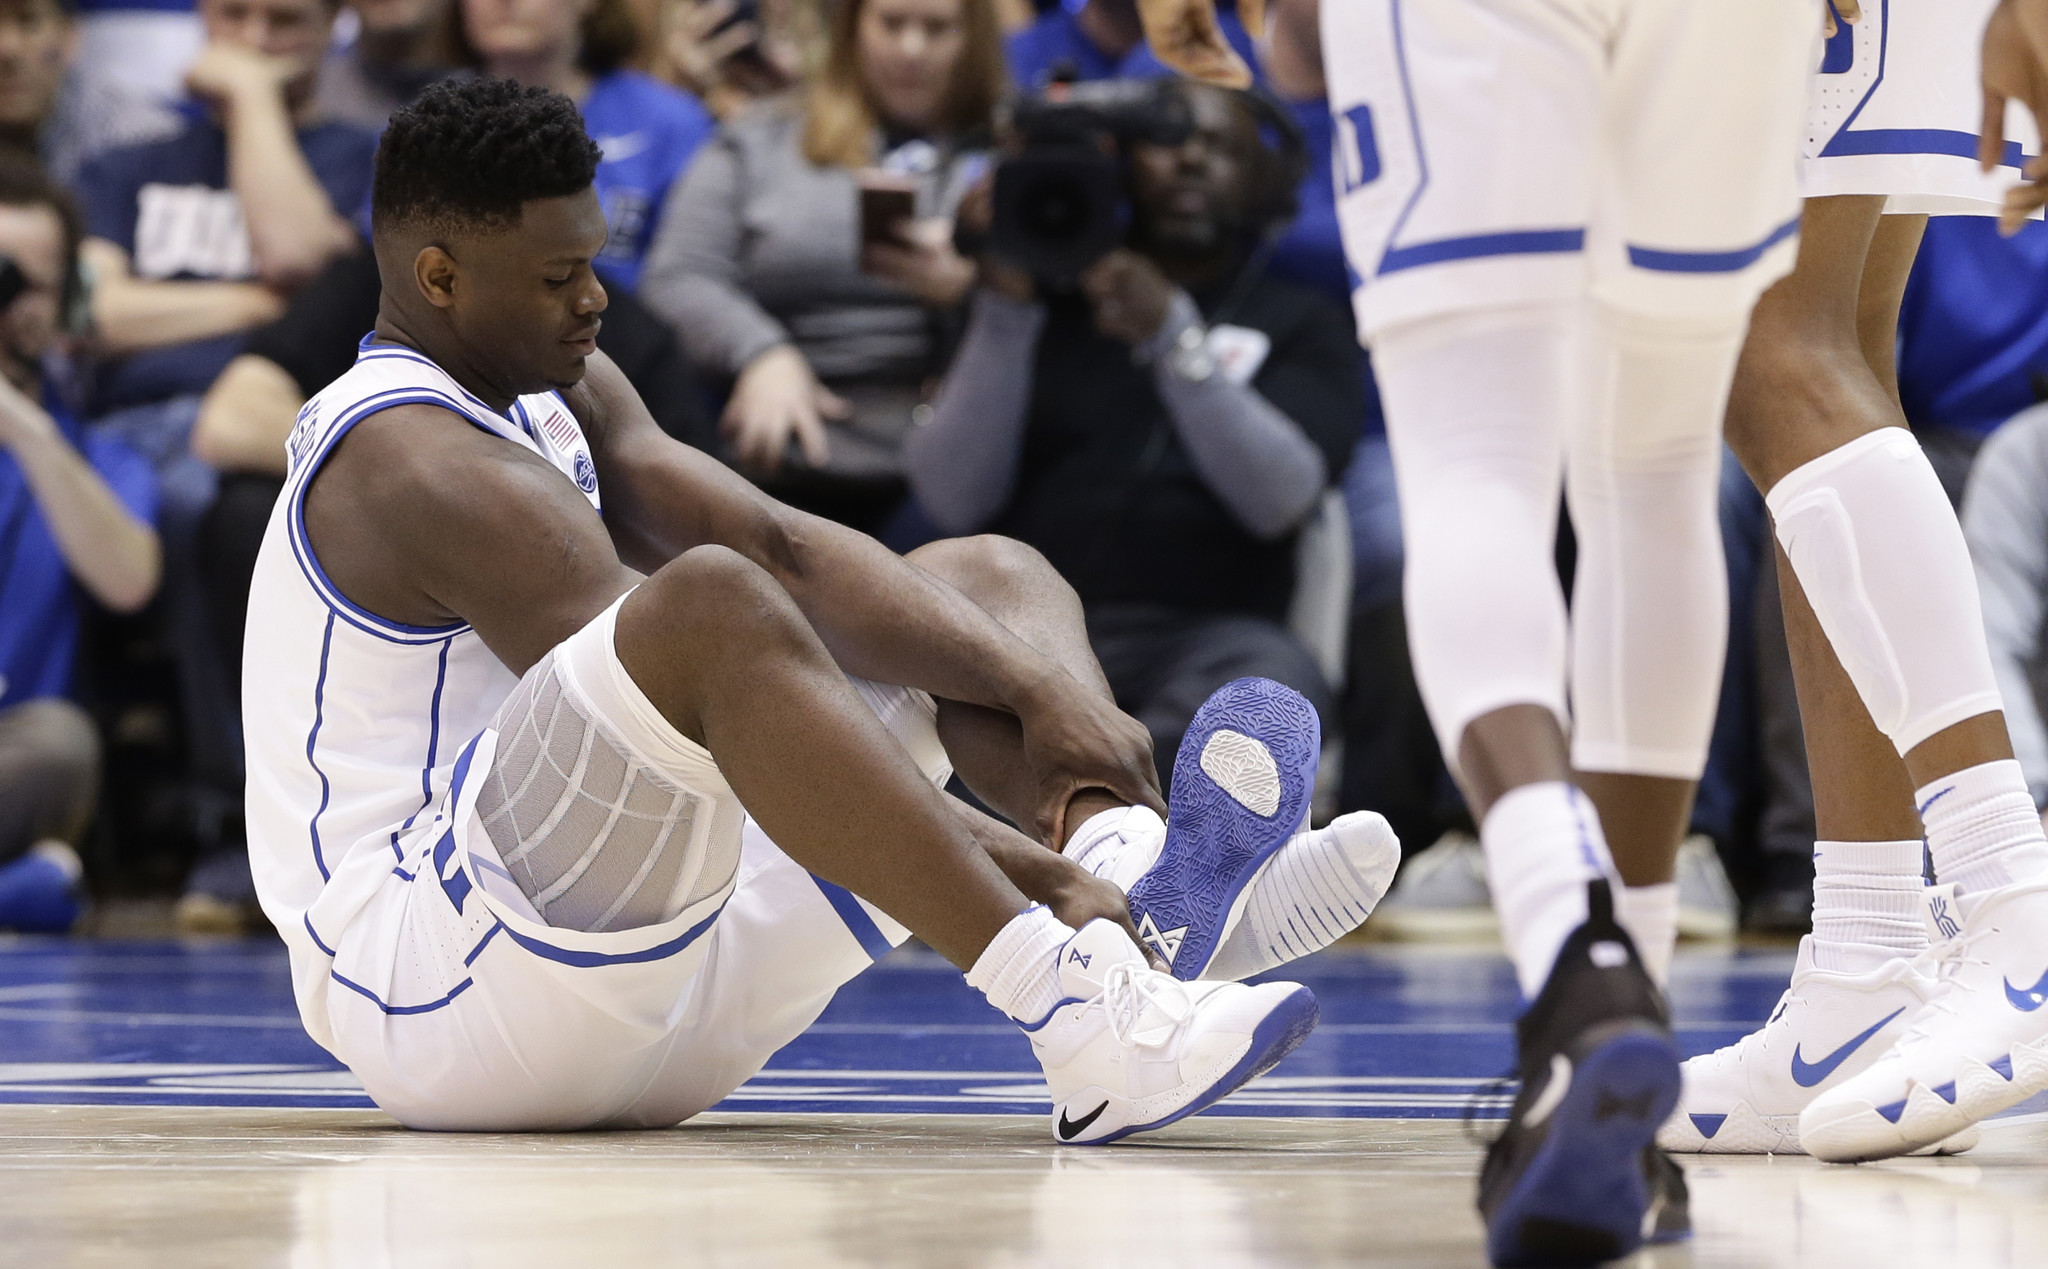 NCAA needs to rethink amateurism because the next Zion Williamson was watching